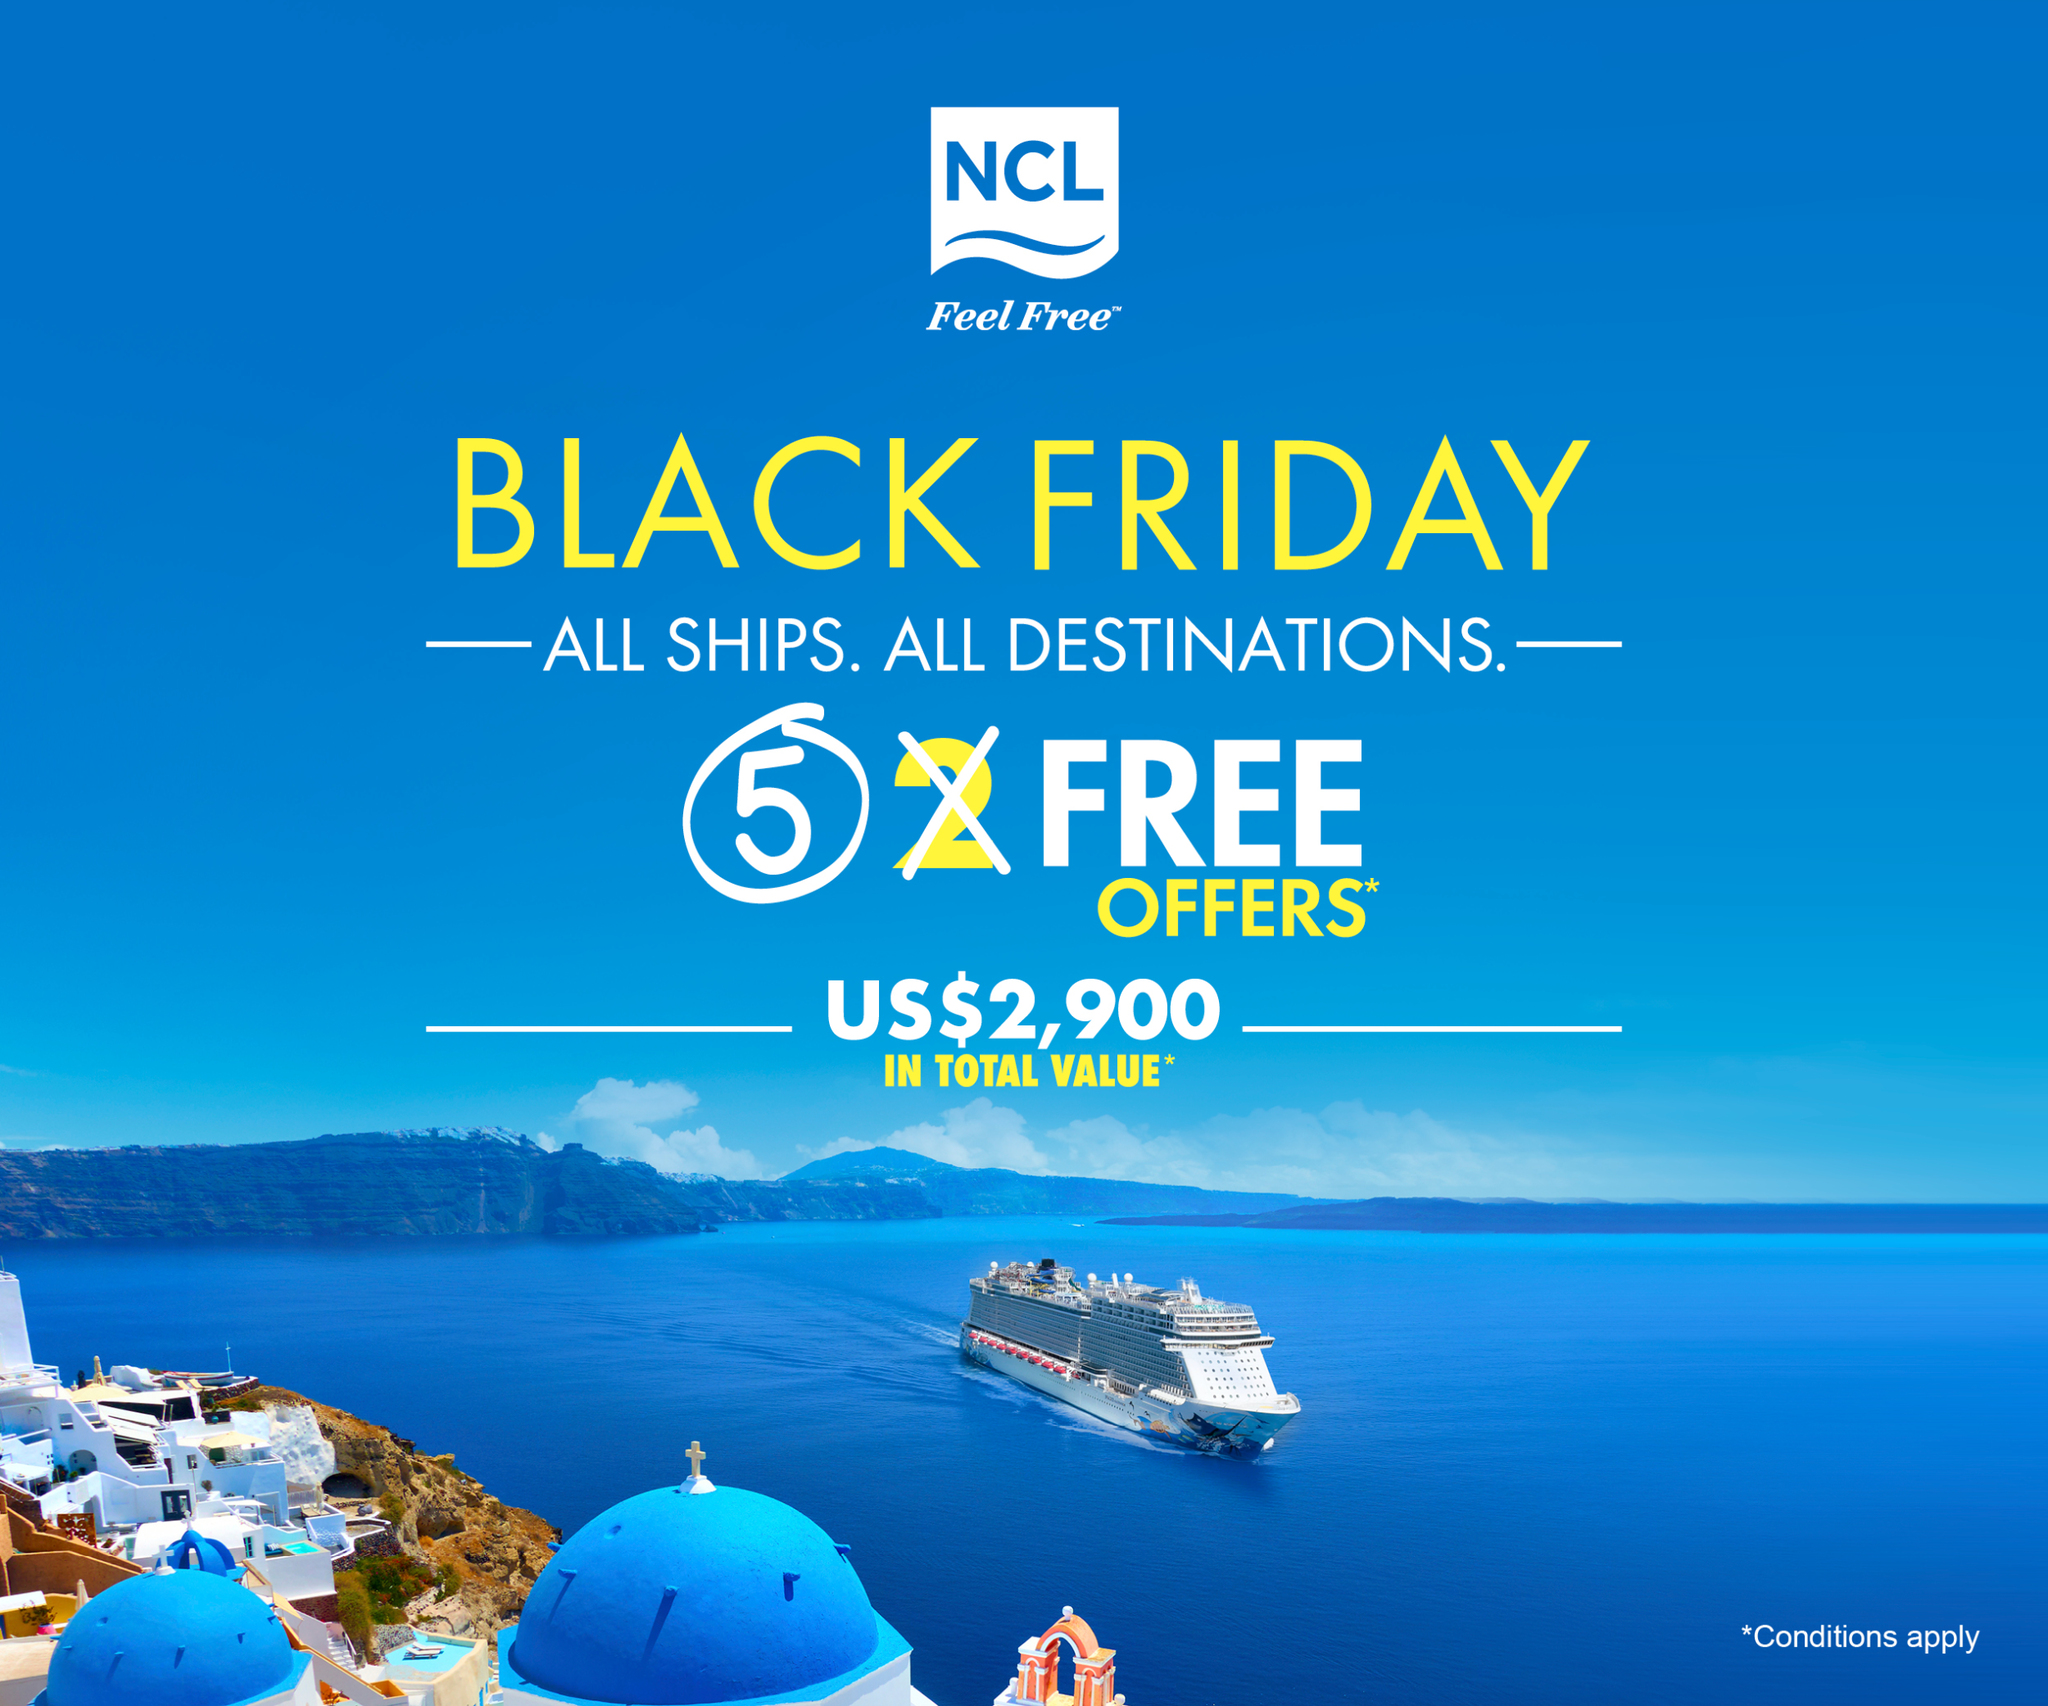 NCL Black Friday Sale